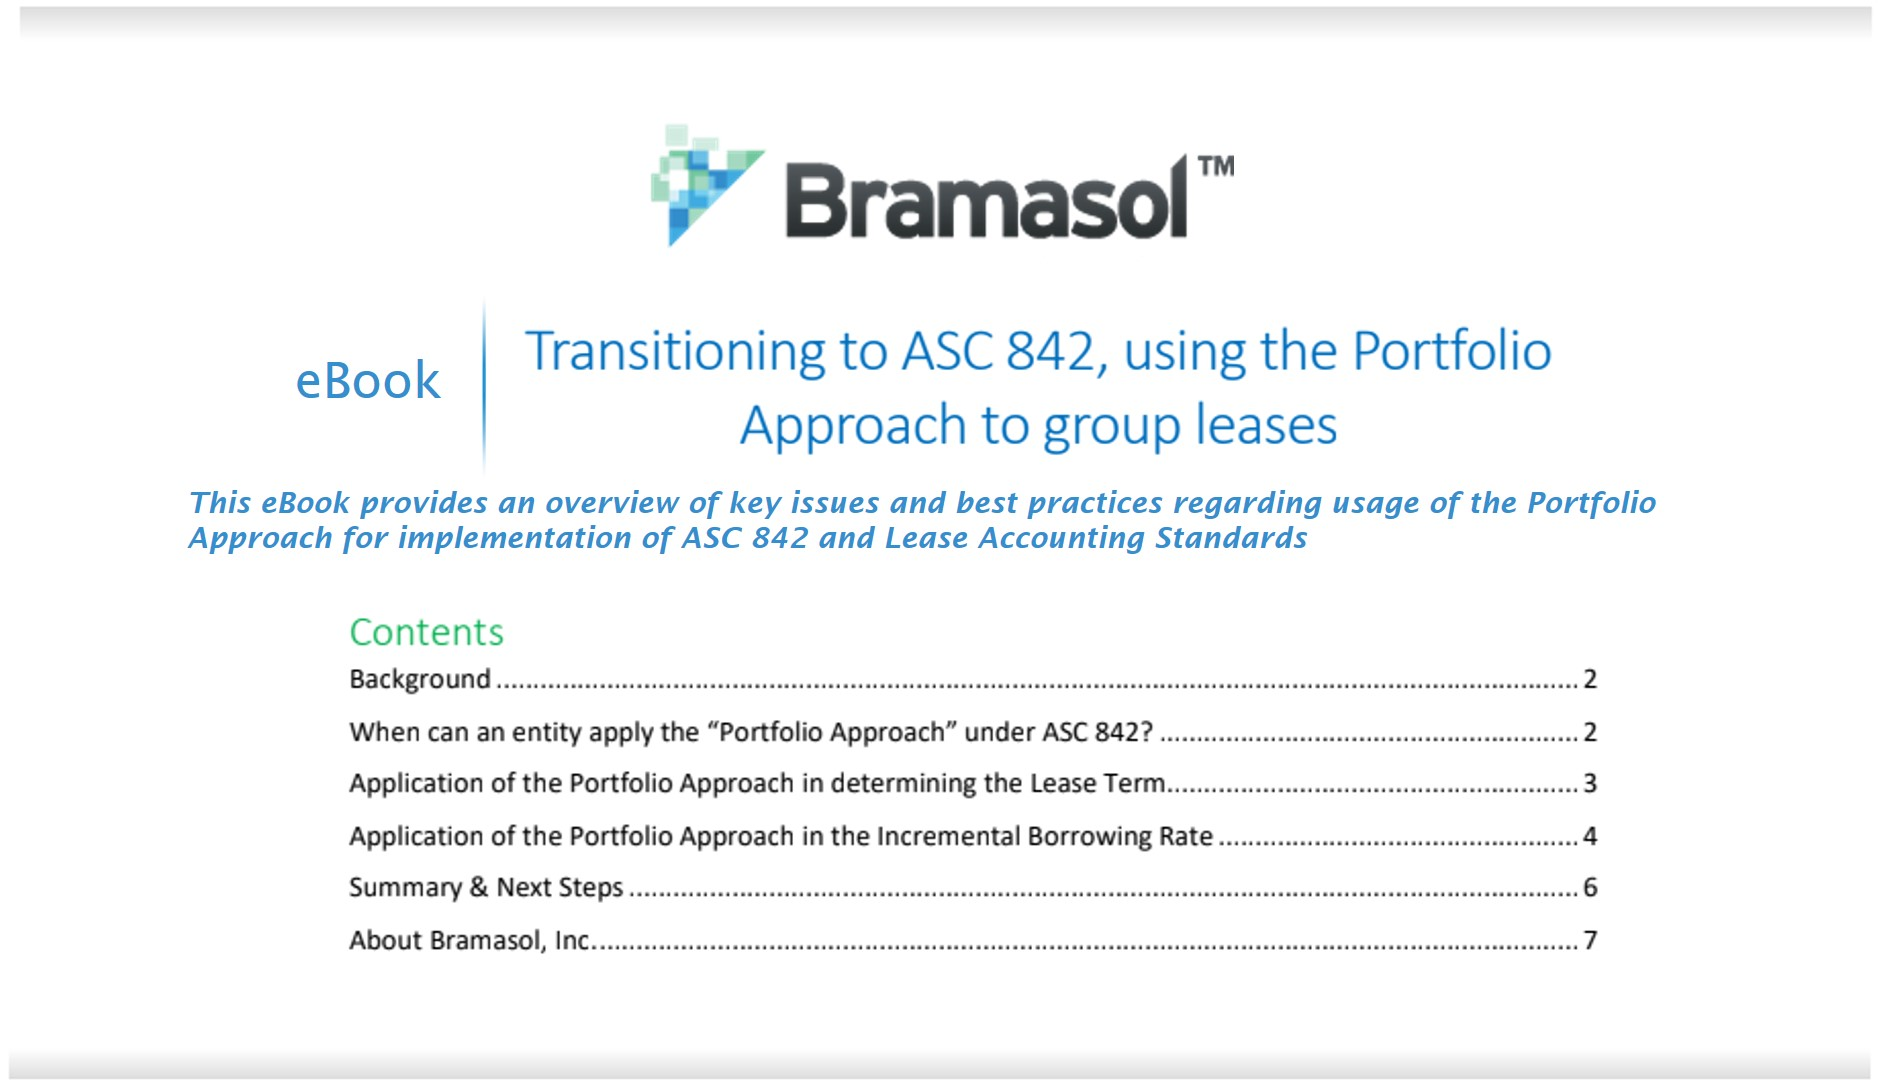 new ebook on Transitioning to ASC 842, using the Portfolio Approach to Group Leases